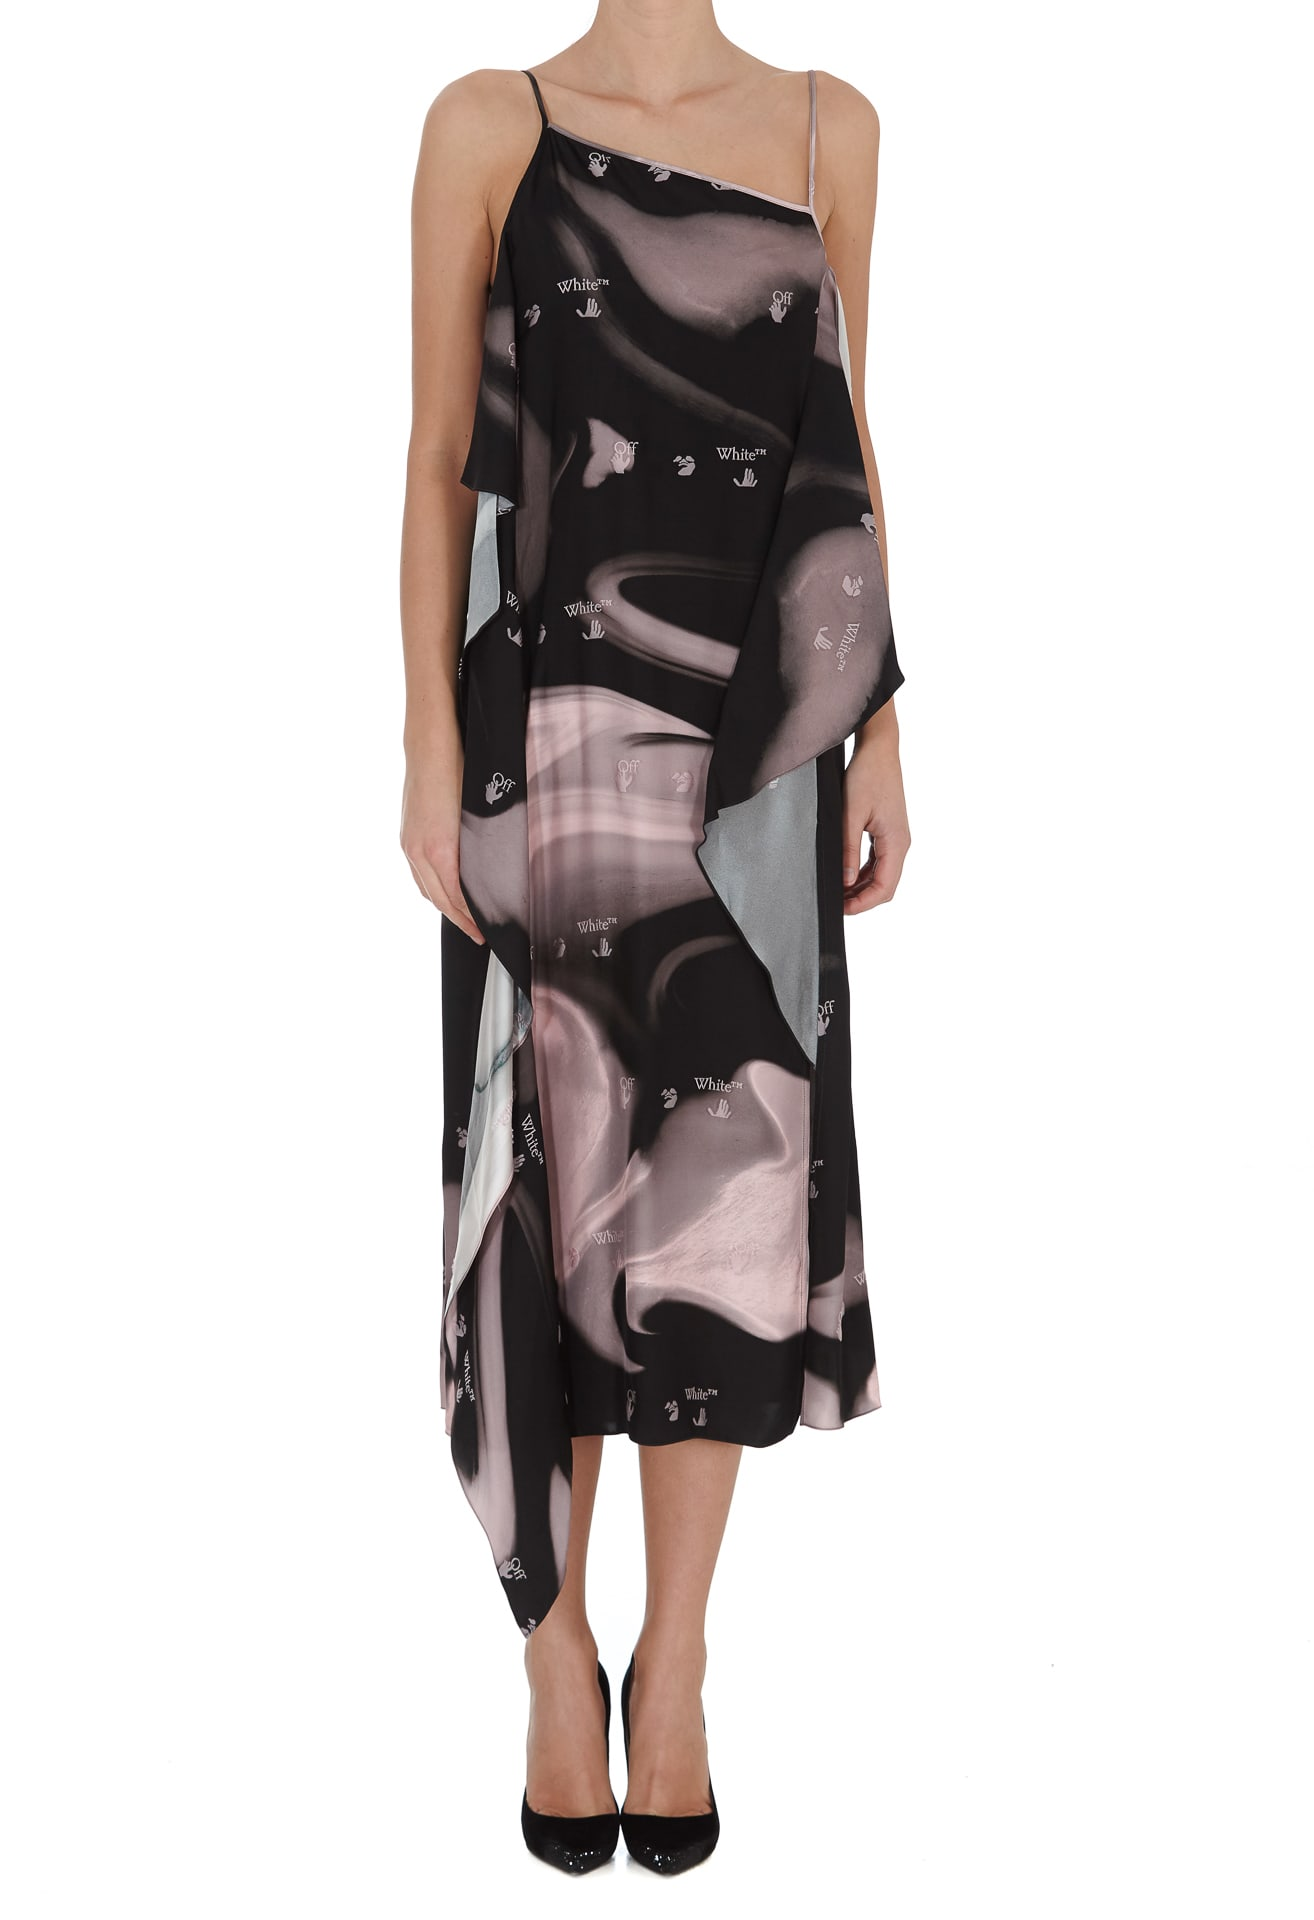 Off-White OFF-WHITE LIQUID MELT WAVES DRESS